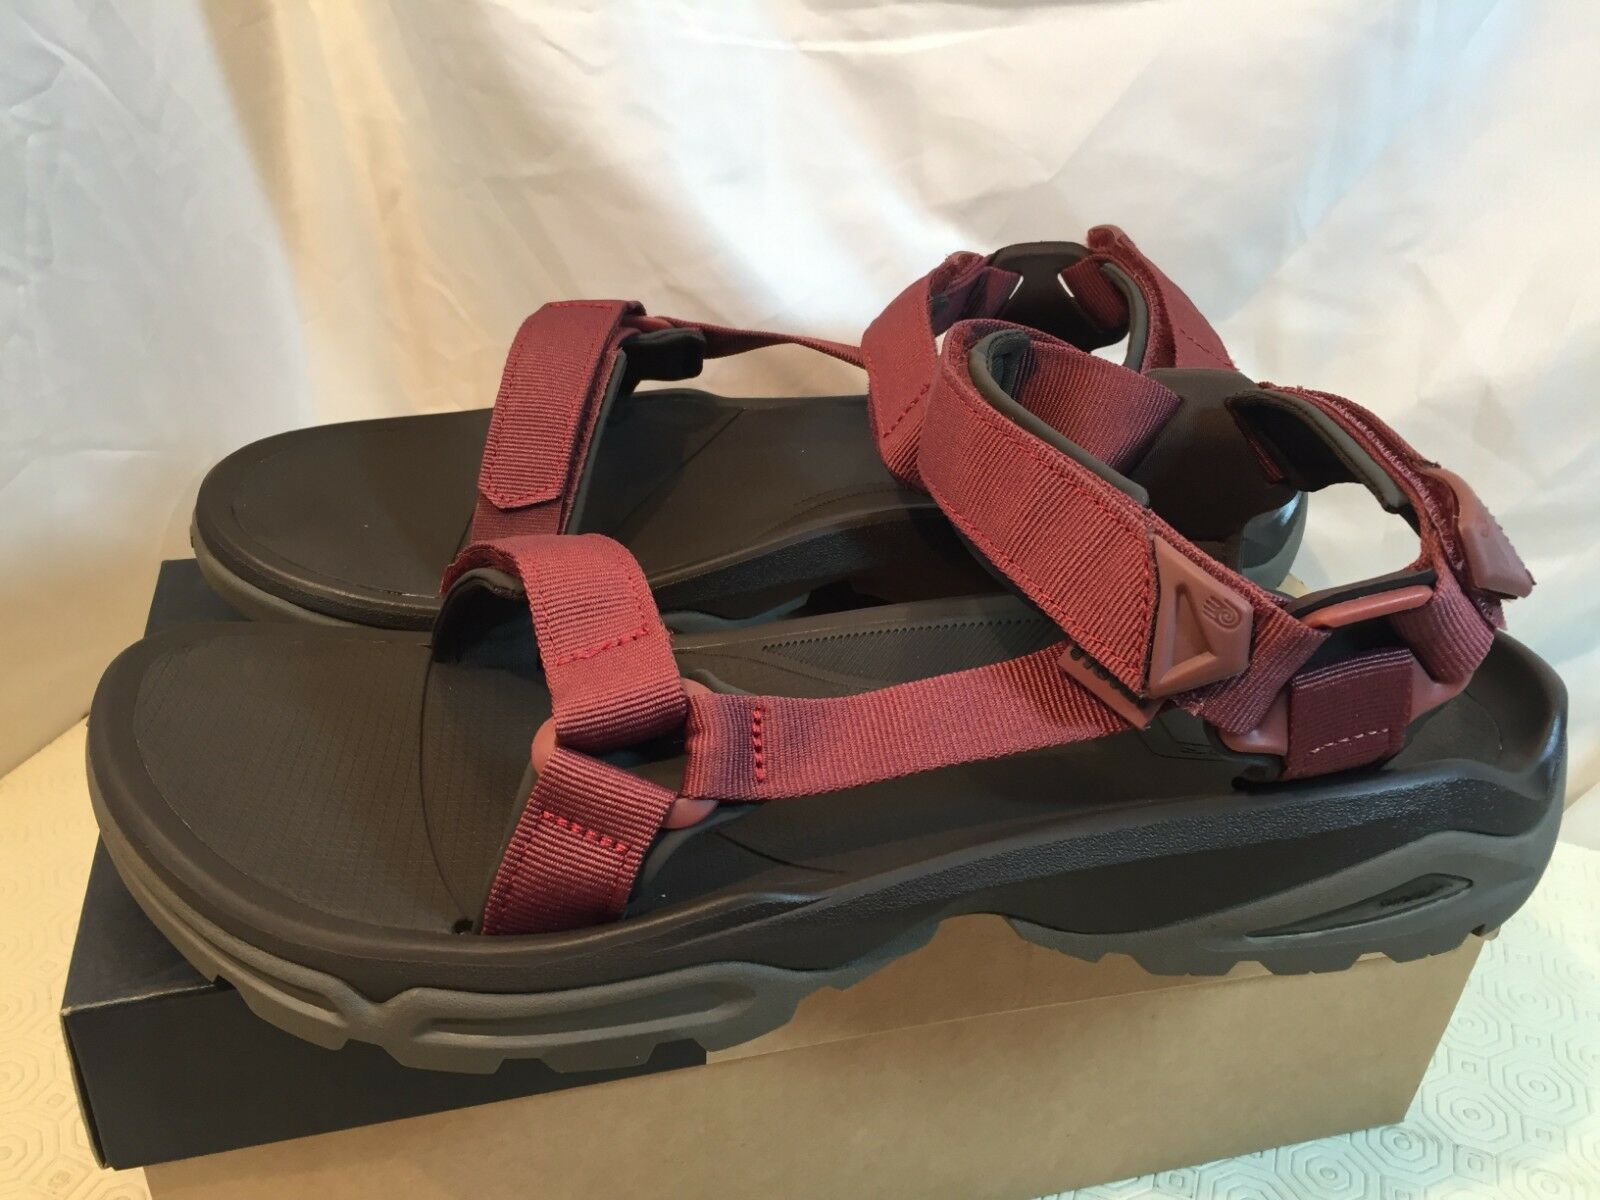 776510e01ec8 Teva Men s Terra Fi 4 Sports and Outdoor Hiking Sandal FIRETREAD ...